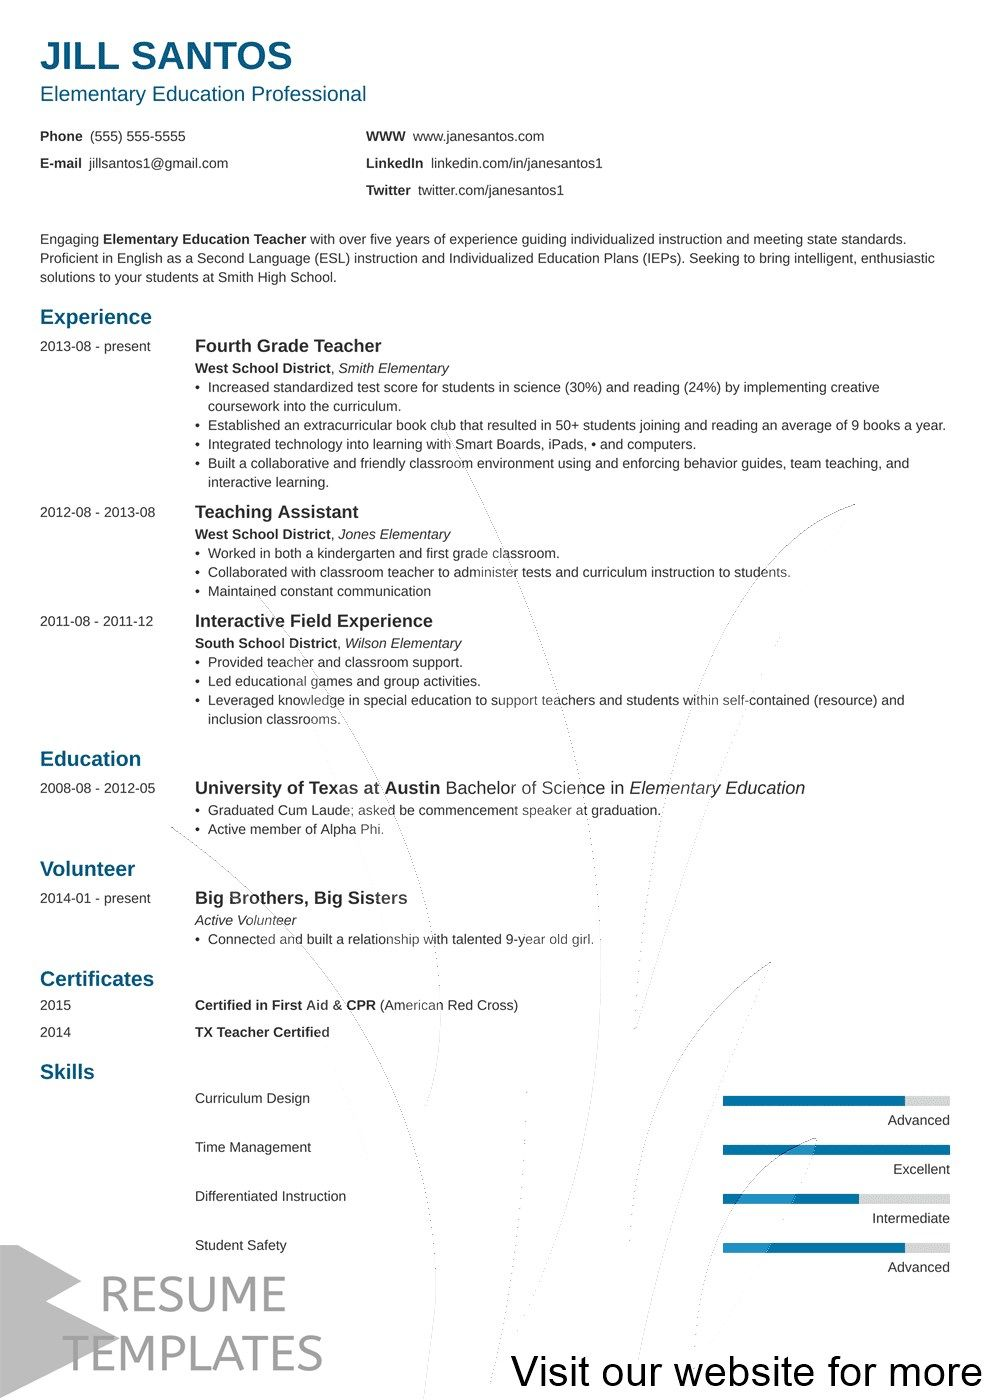 Best Free Resume Builder Site 2020 In 2020 Resume Cover Letter